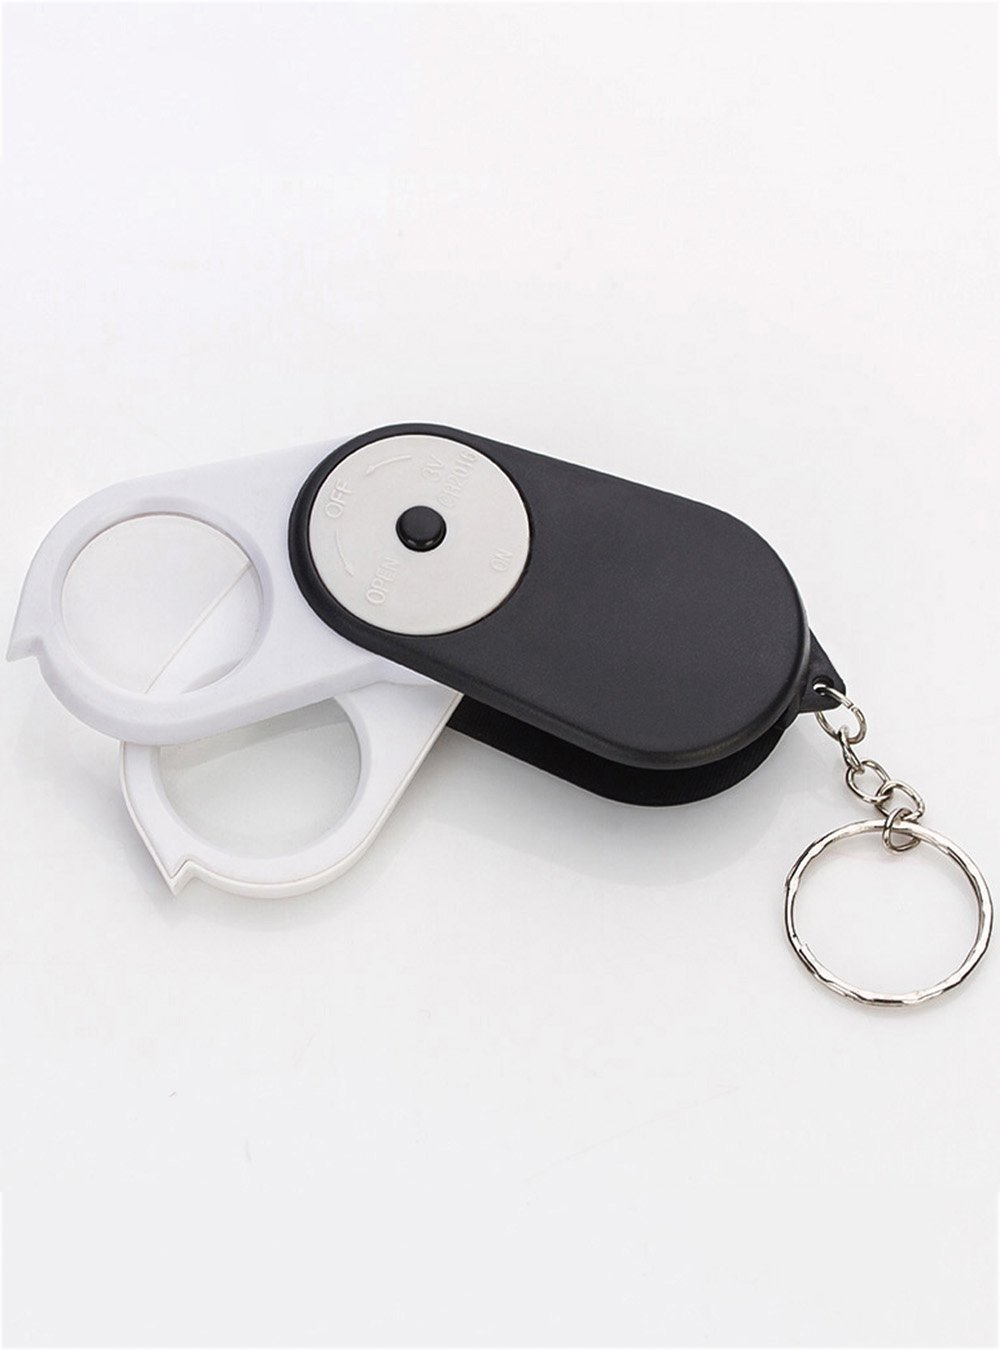 Snowmanna-New Button Switch Design 30X(Double Lens) 25mm Foldable Pocket Eye Loupe Magnifier Illuminant LED Lighting Magnifying Glass with Keychain-Black